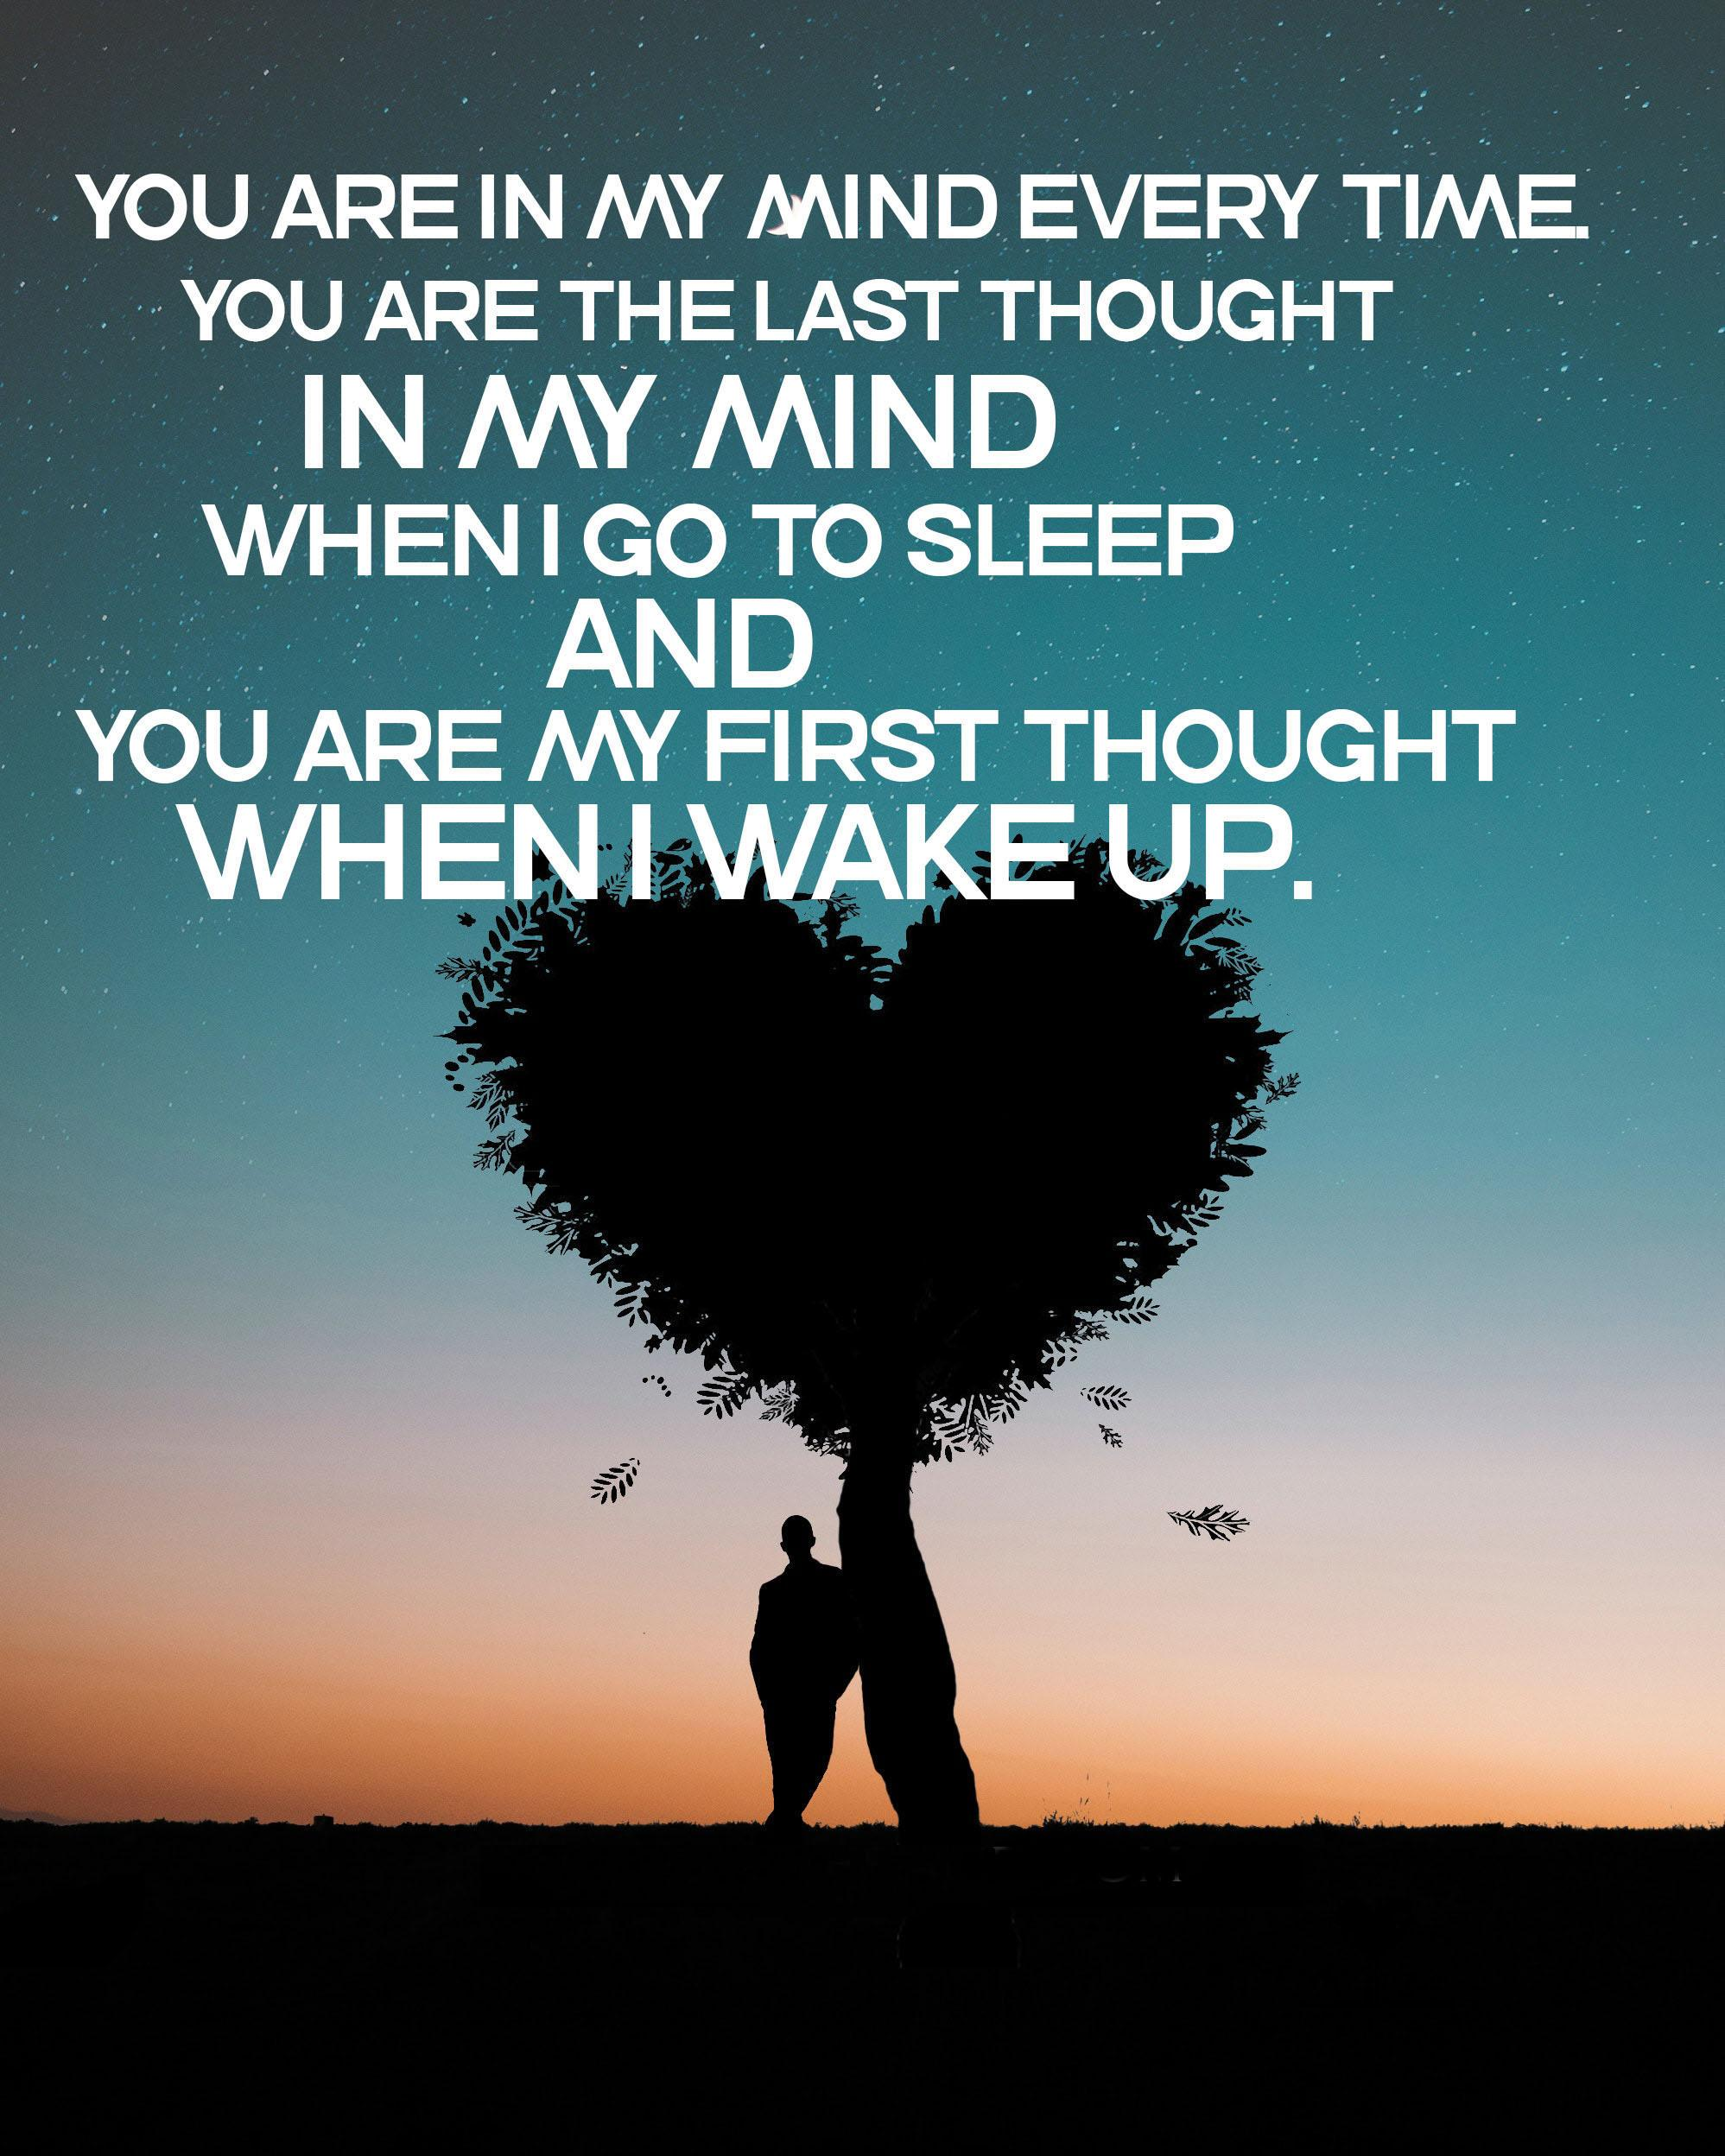 You are in my mind every time. You are the last thought in my mind when I go to sleep and you are my first thought when I wake up.[1997*2496]